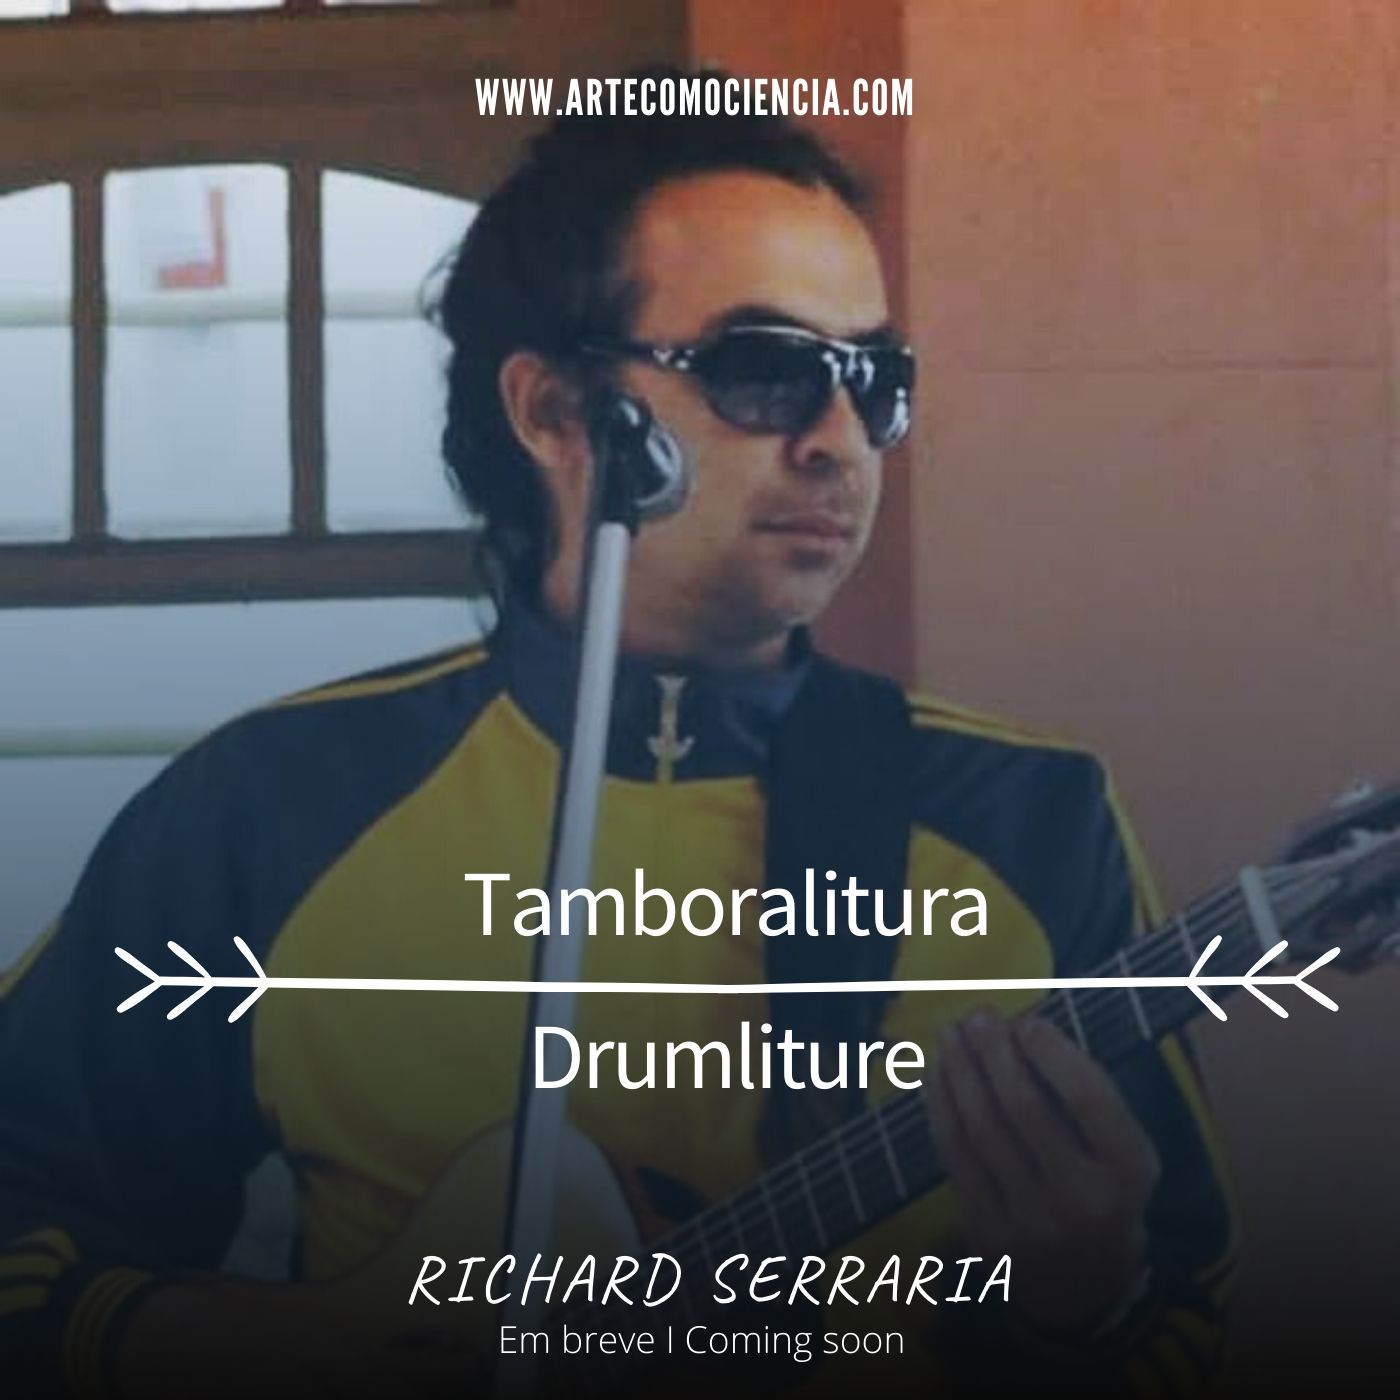 Richard Serraria: tamboralitura / drumliture